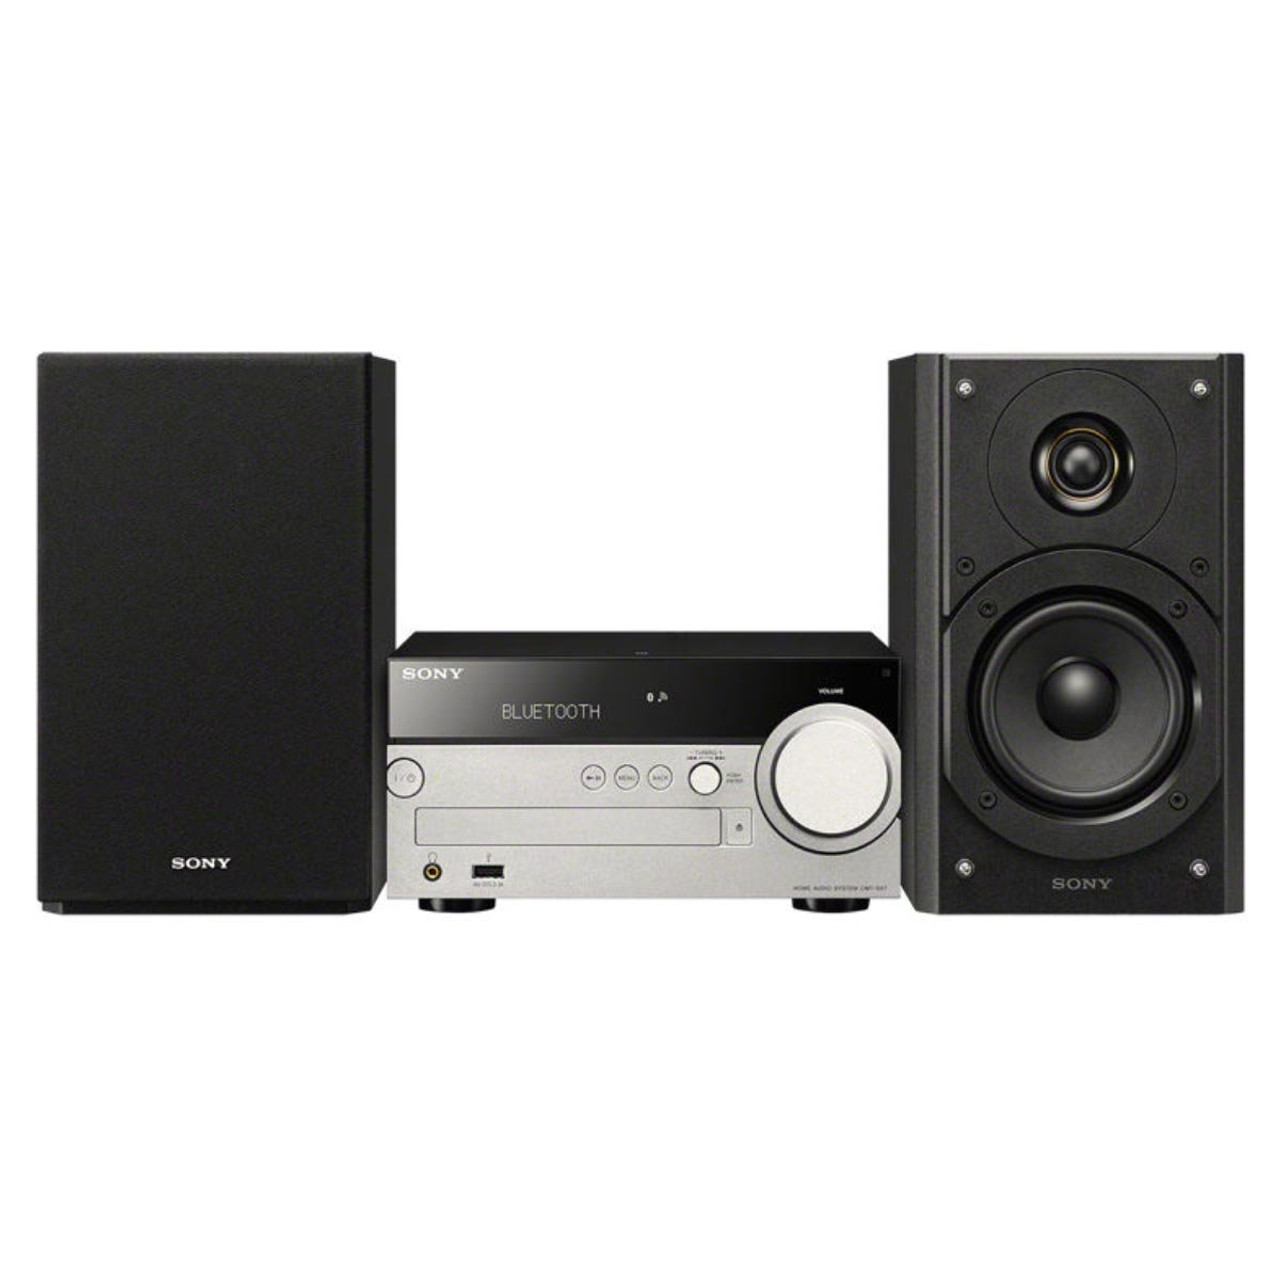 Sony CMT-SX7B HiFi System with Wi-fi & Bluetooth Technology - RRP $849.00